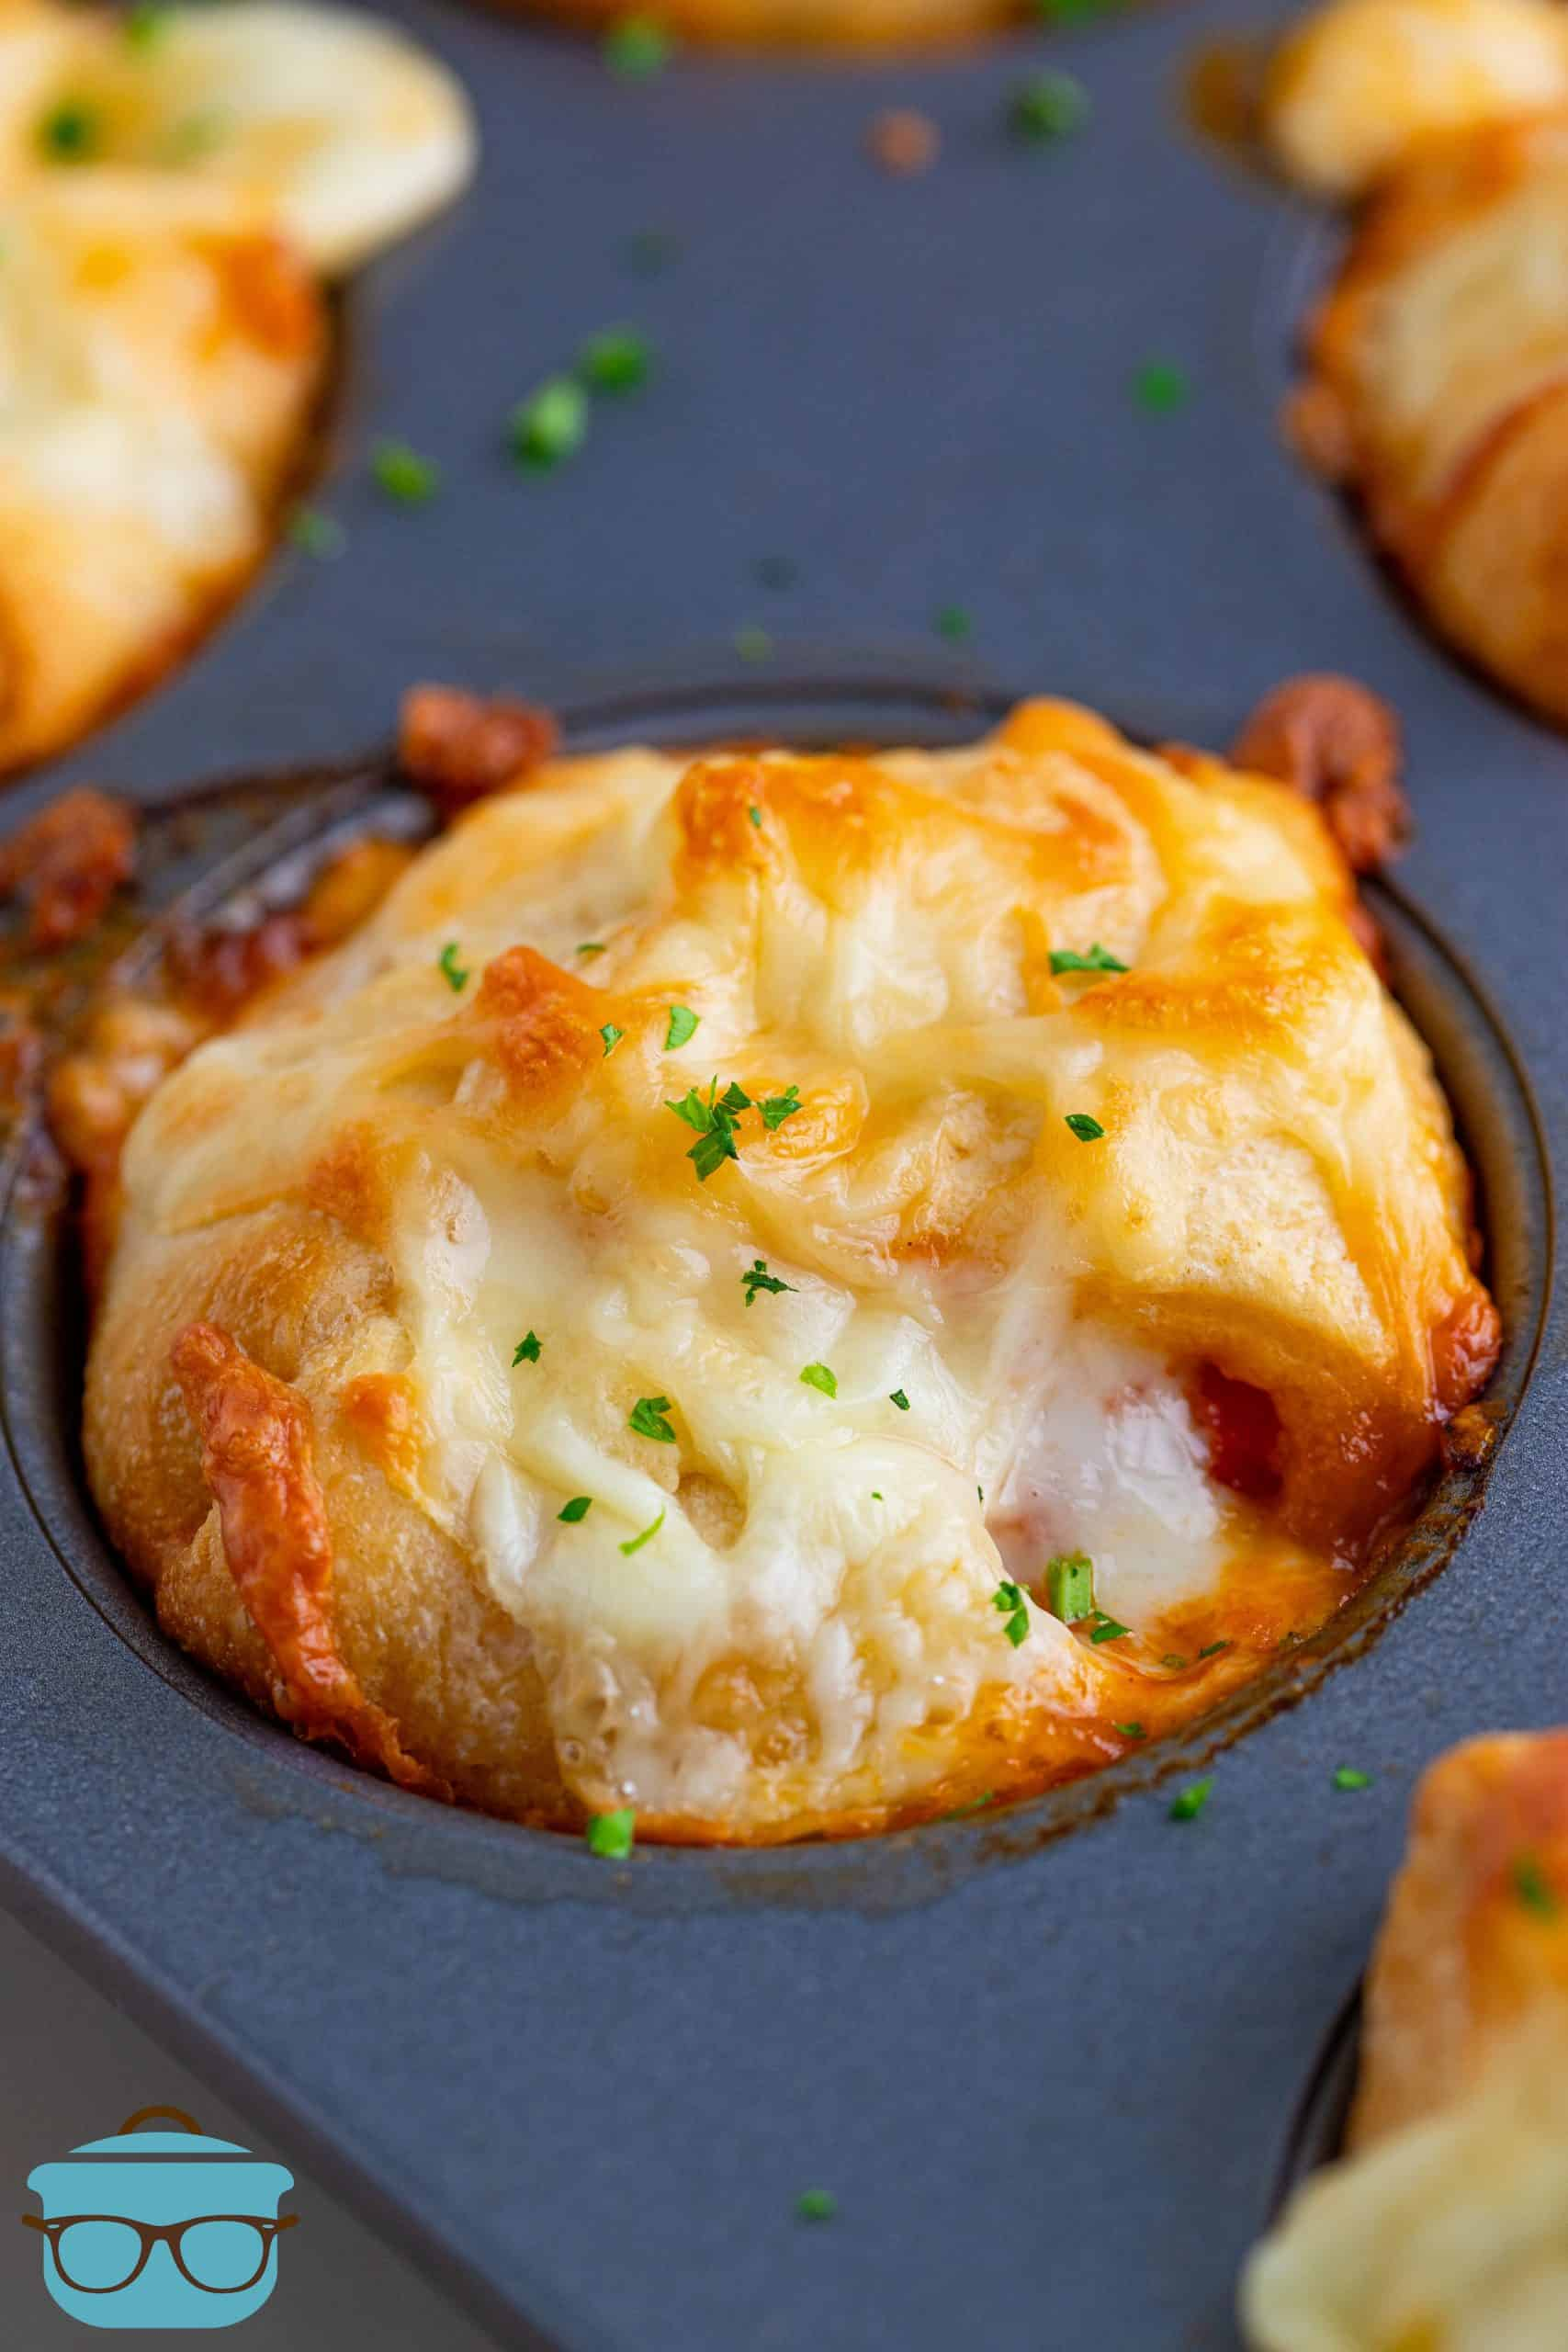 Finished baked Chicken Parmesan Cup in muffin tin.